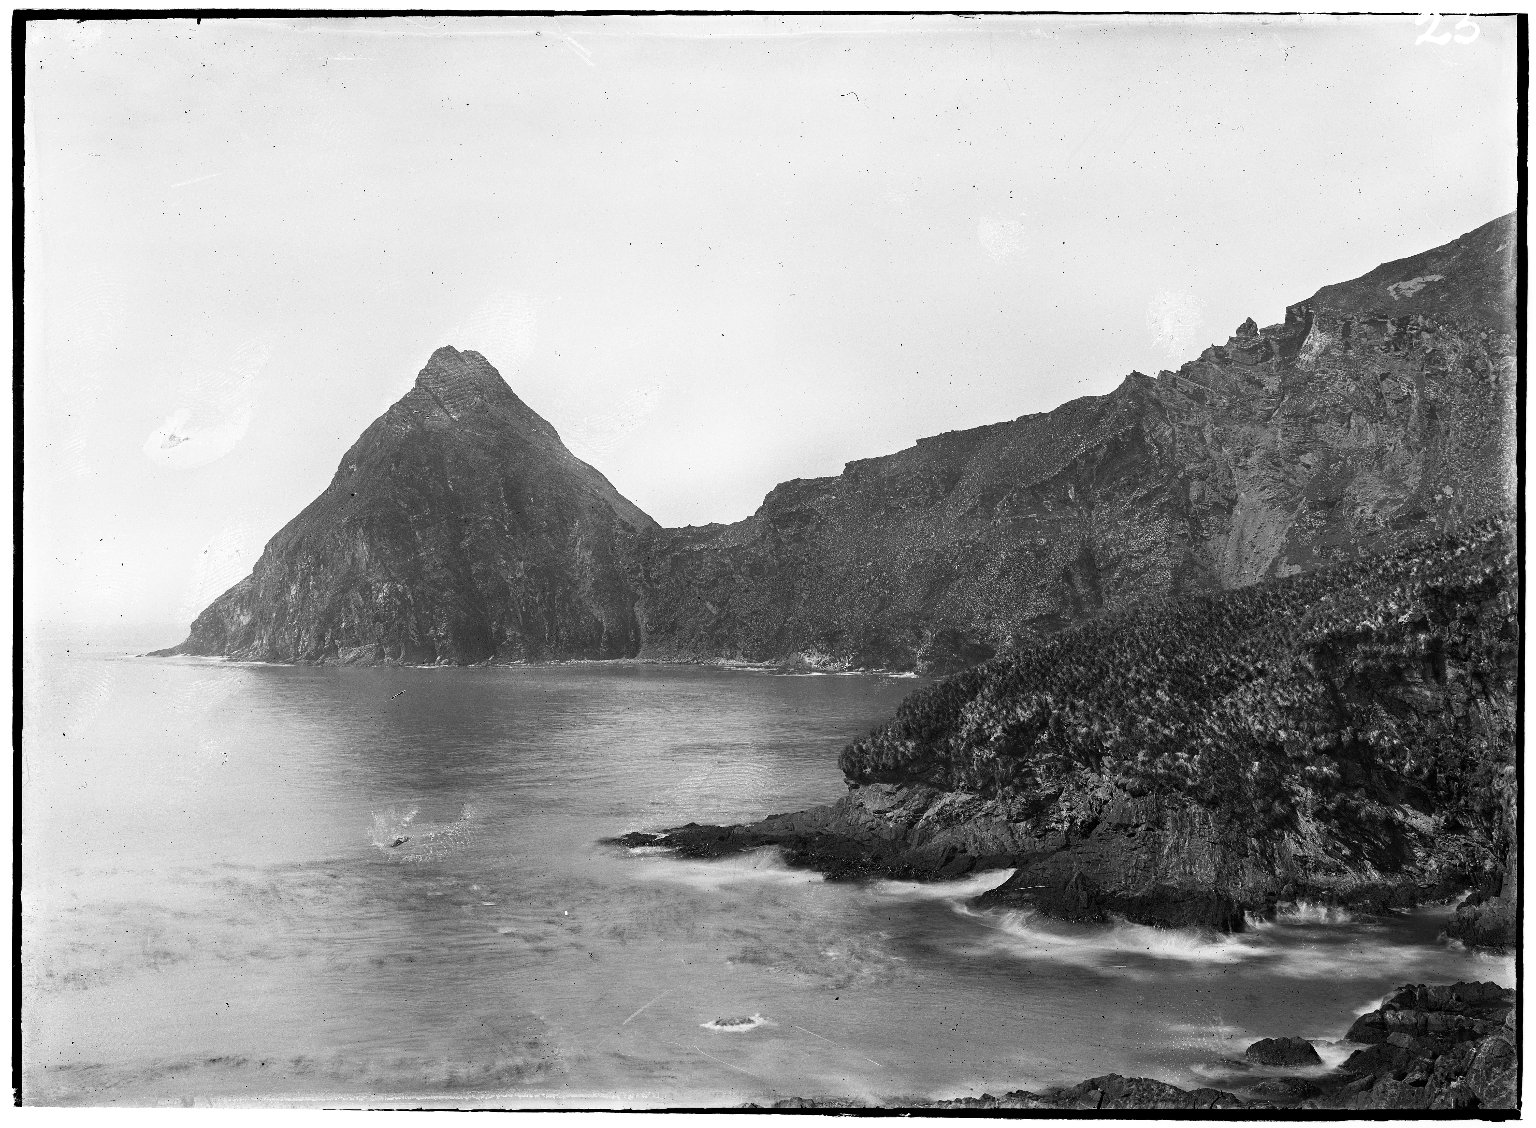 Prospecting Cruise to South Georgia and Antartica, 1913-14, P.027